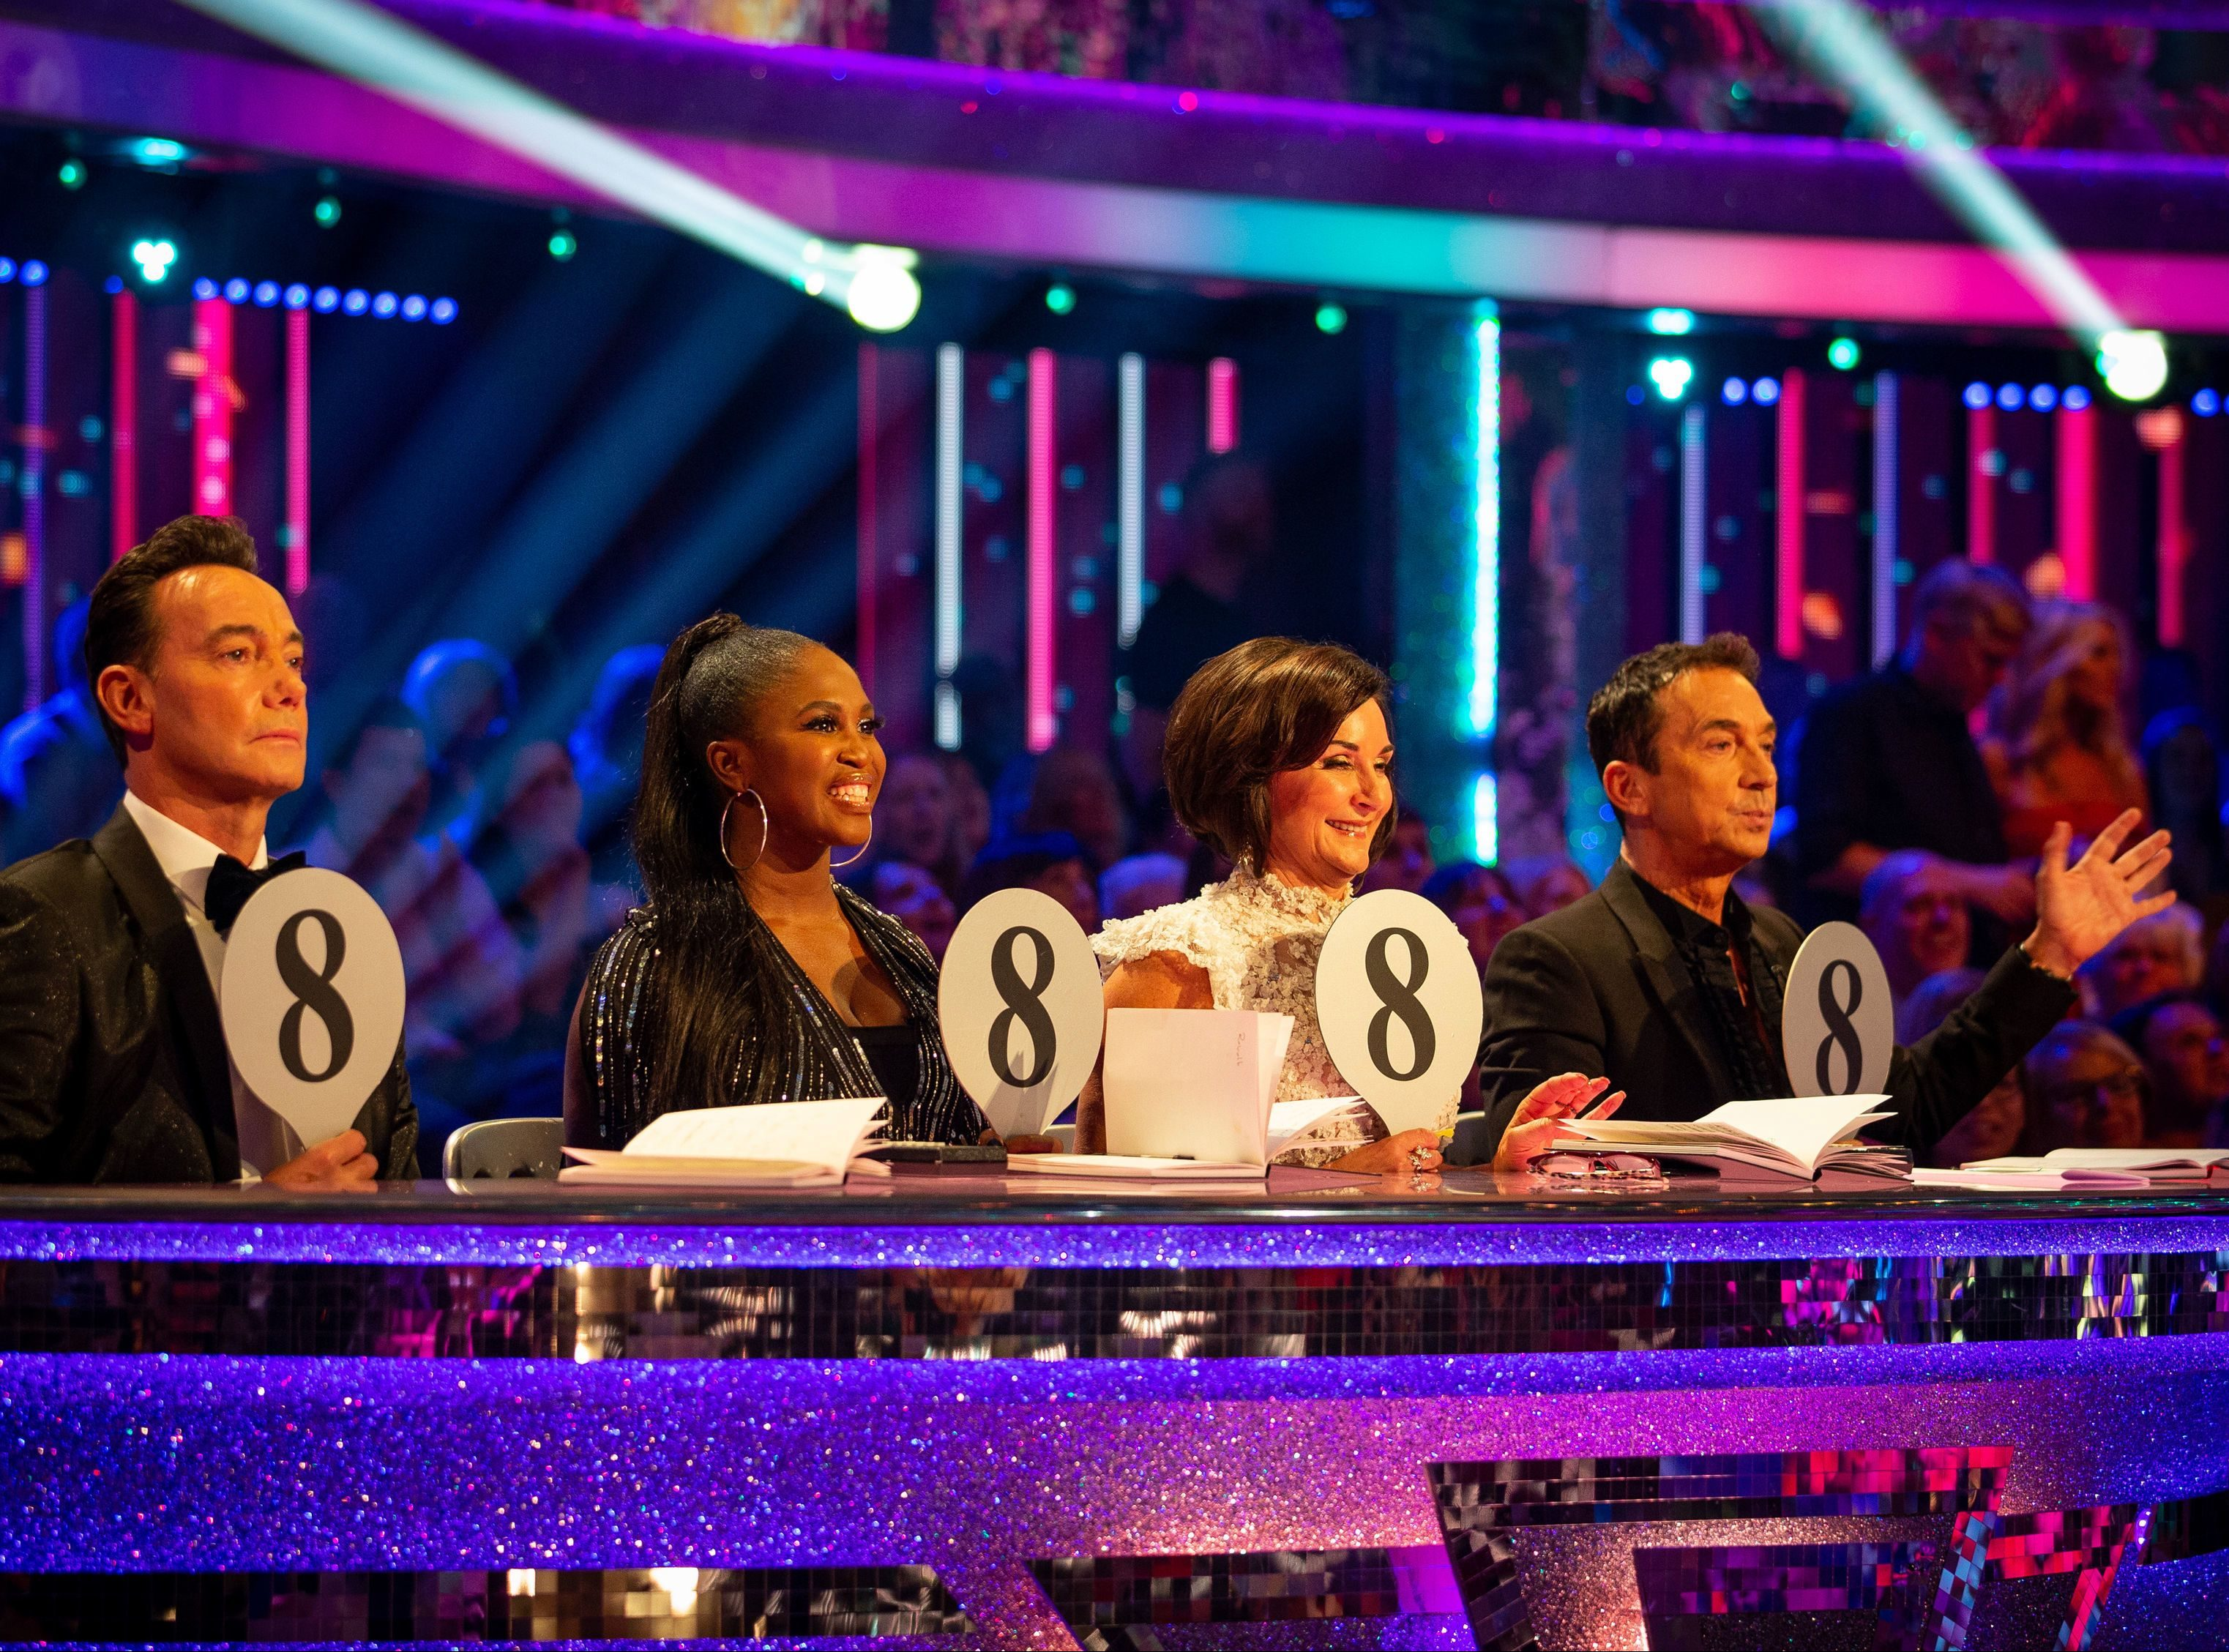 Why is Bruno Tonioli not on Strictly tonight and when will he be back on the judging panel?